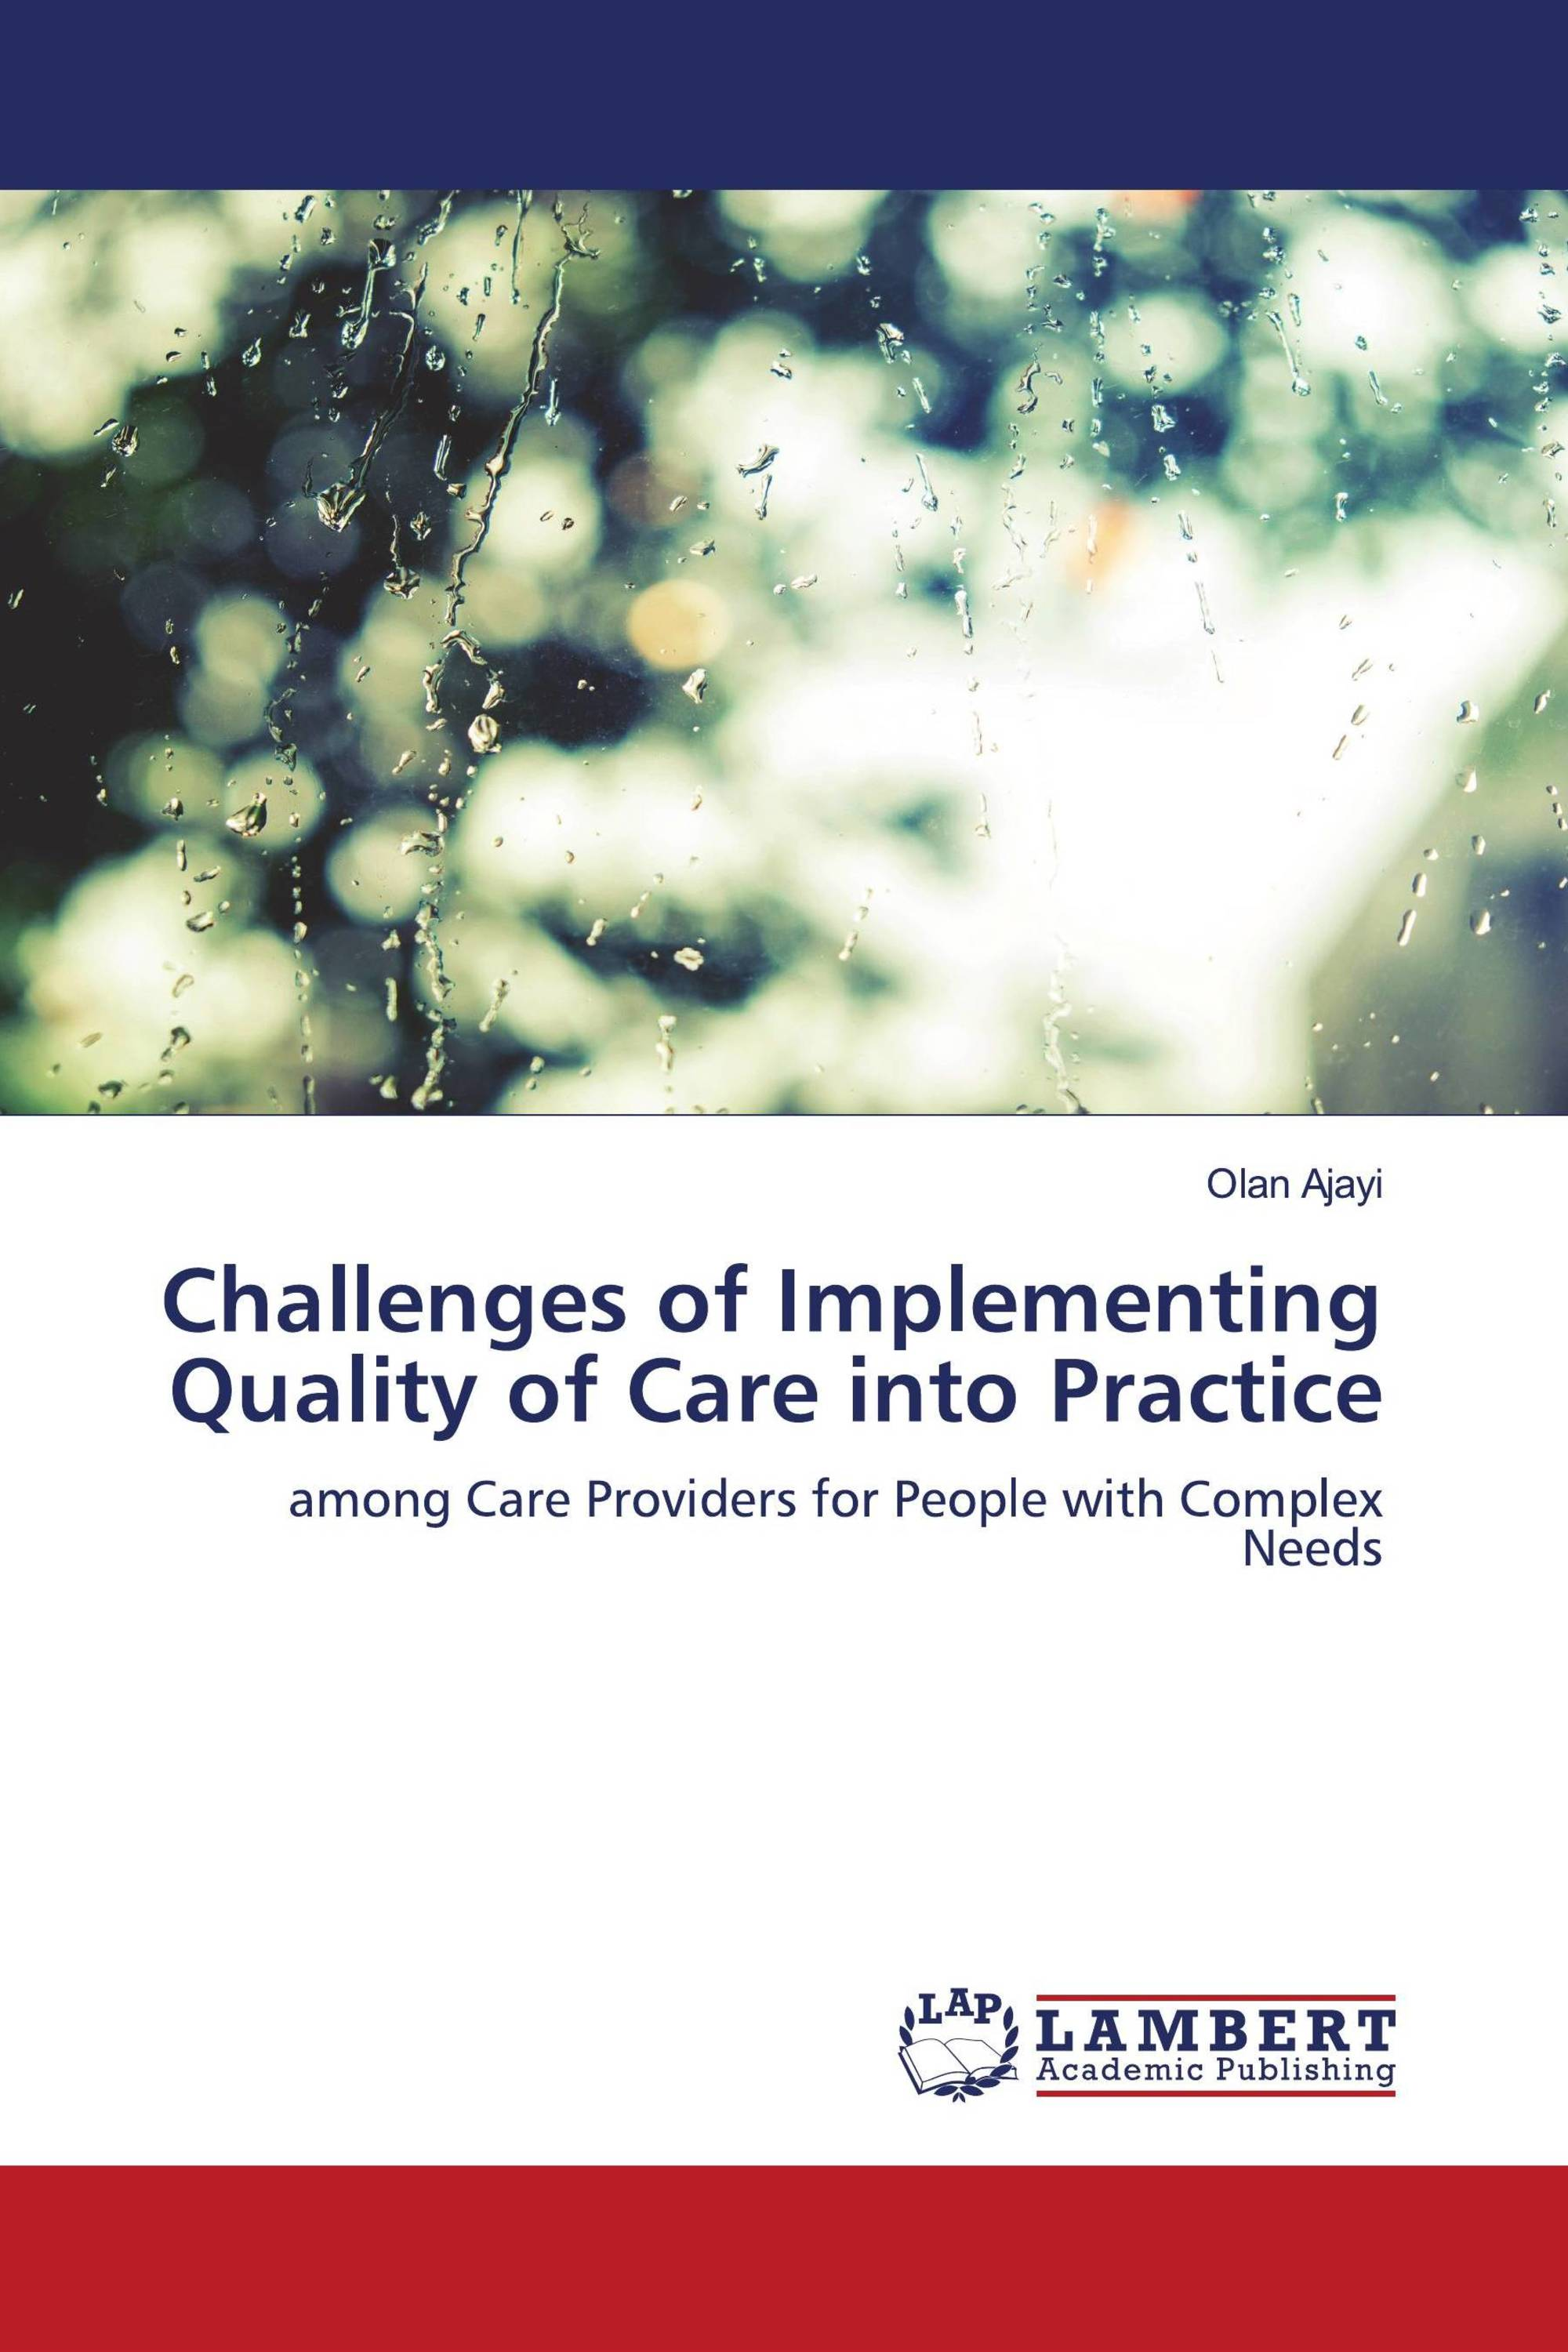 Challenges of Implementing Quality of Care into Practice